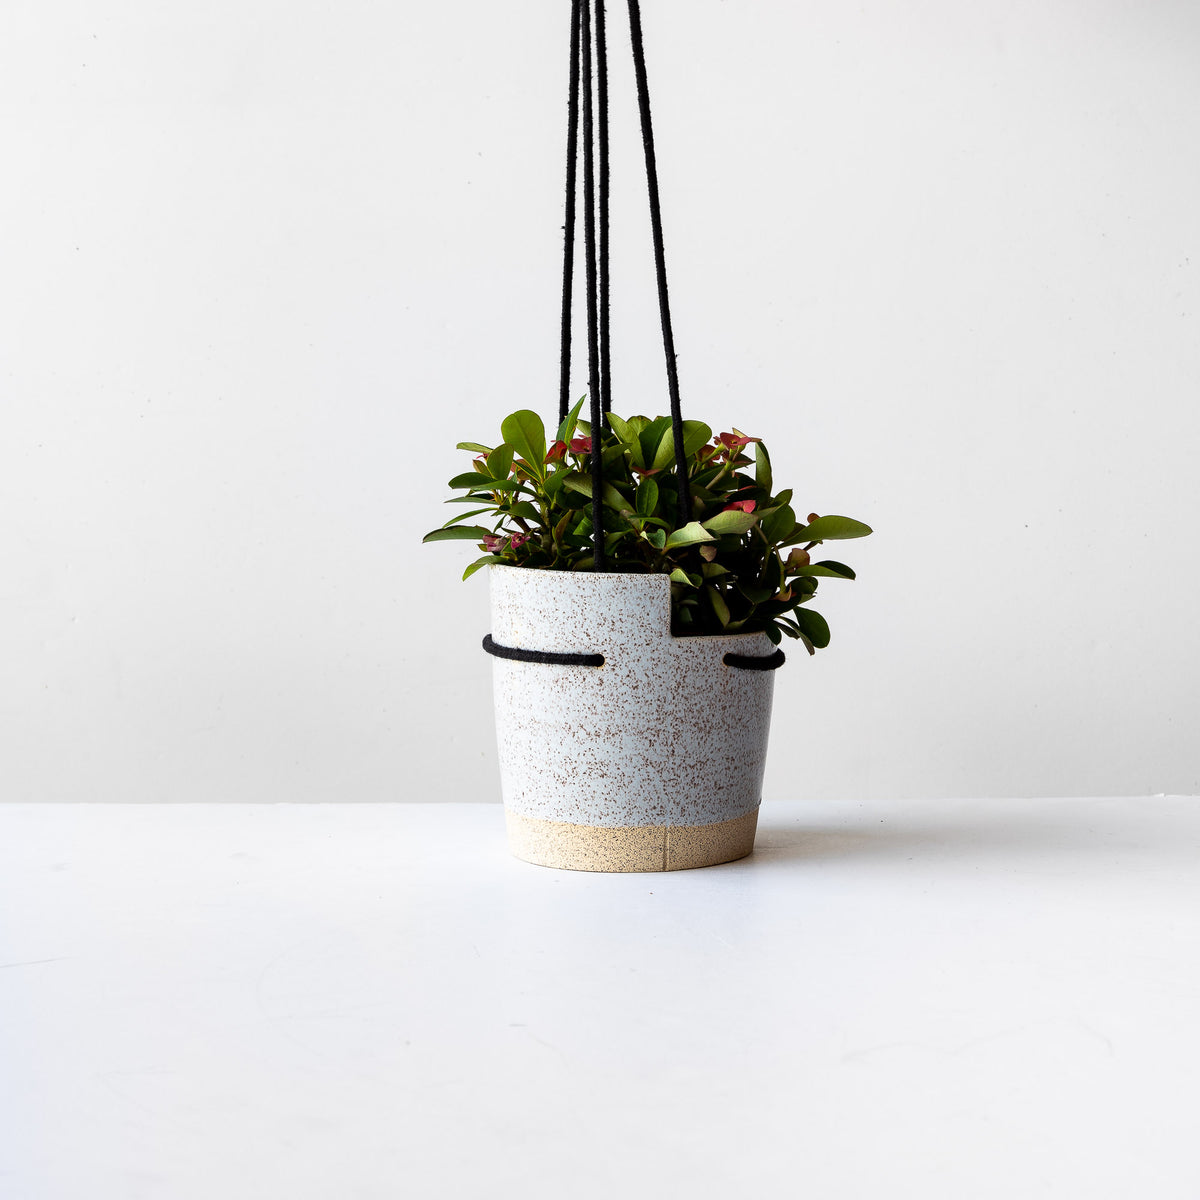 Small Blue Speckled Stoneware Hanging Planter With Plant- Sold by Chic & Basta